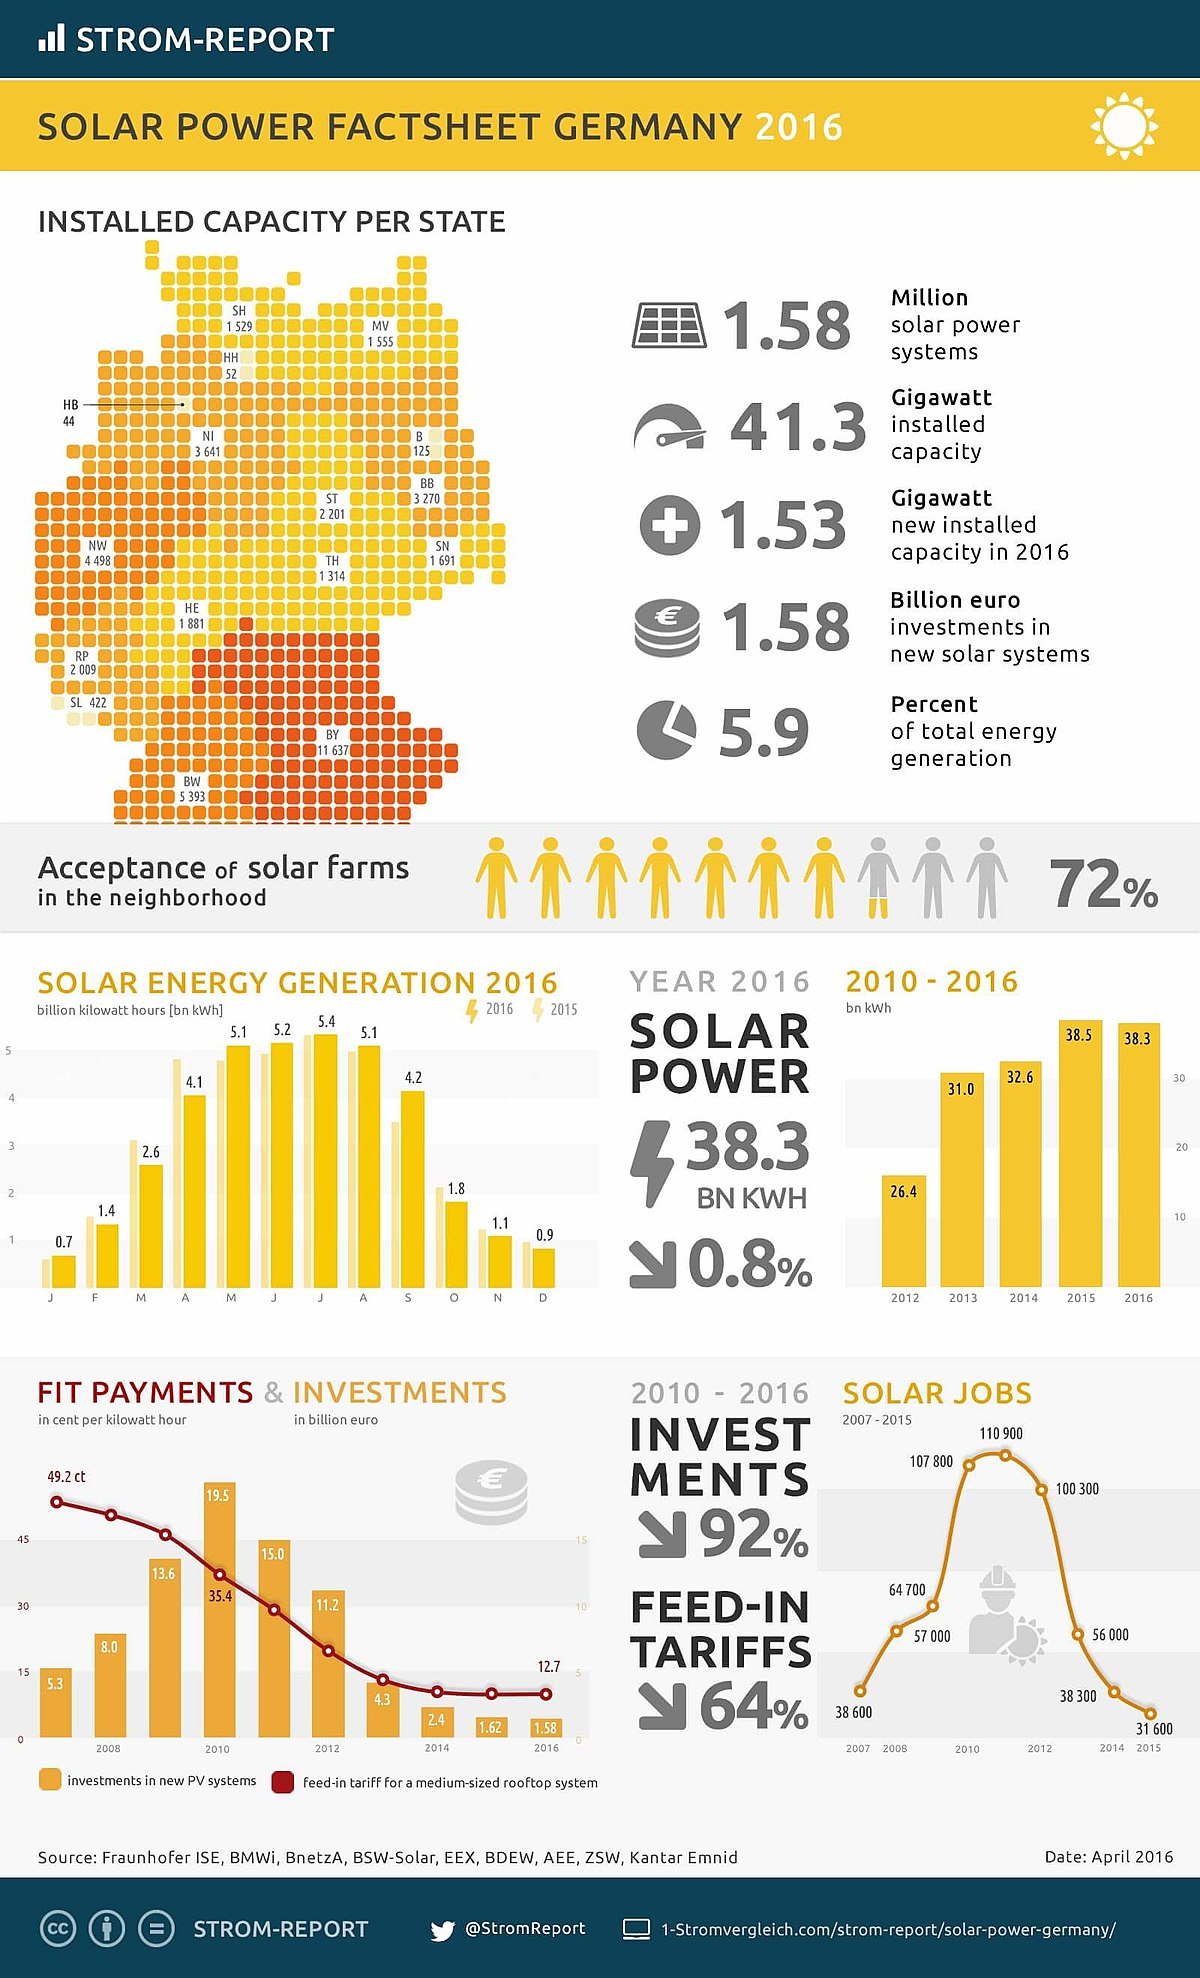 Solar power in Germany